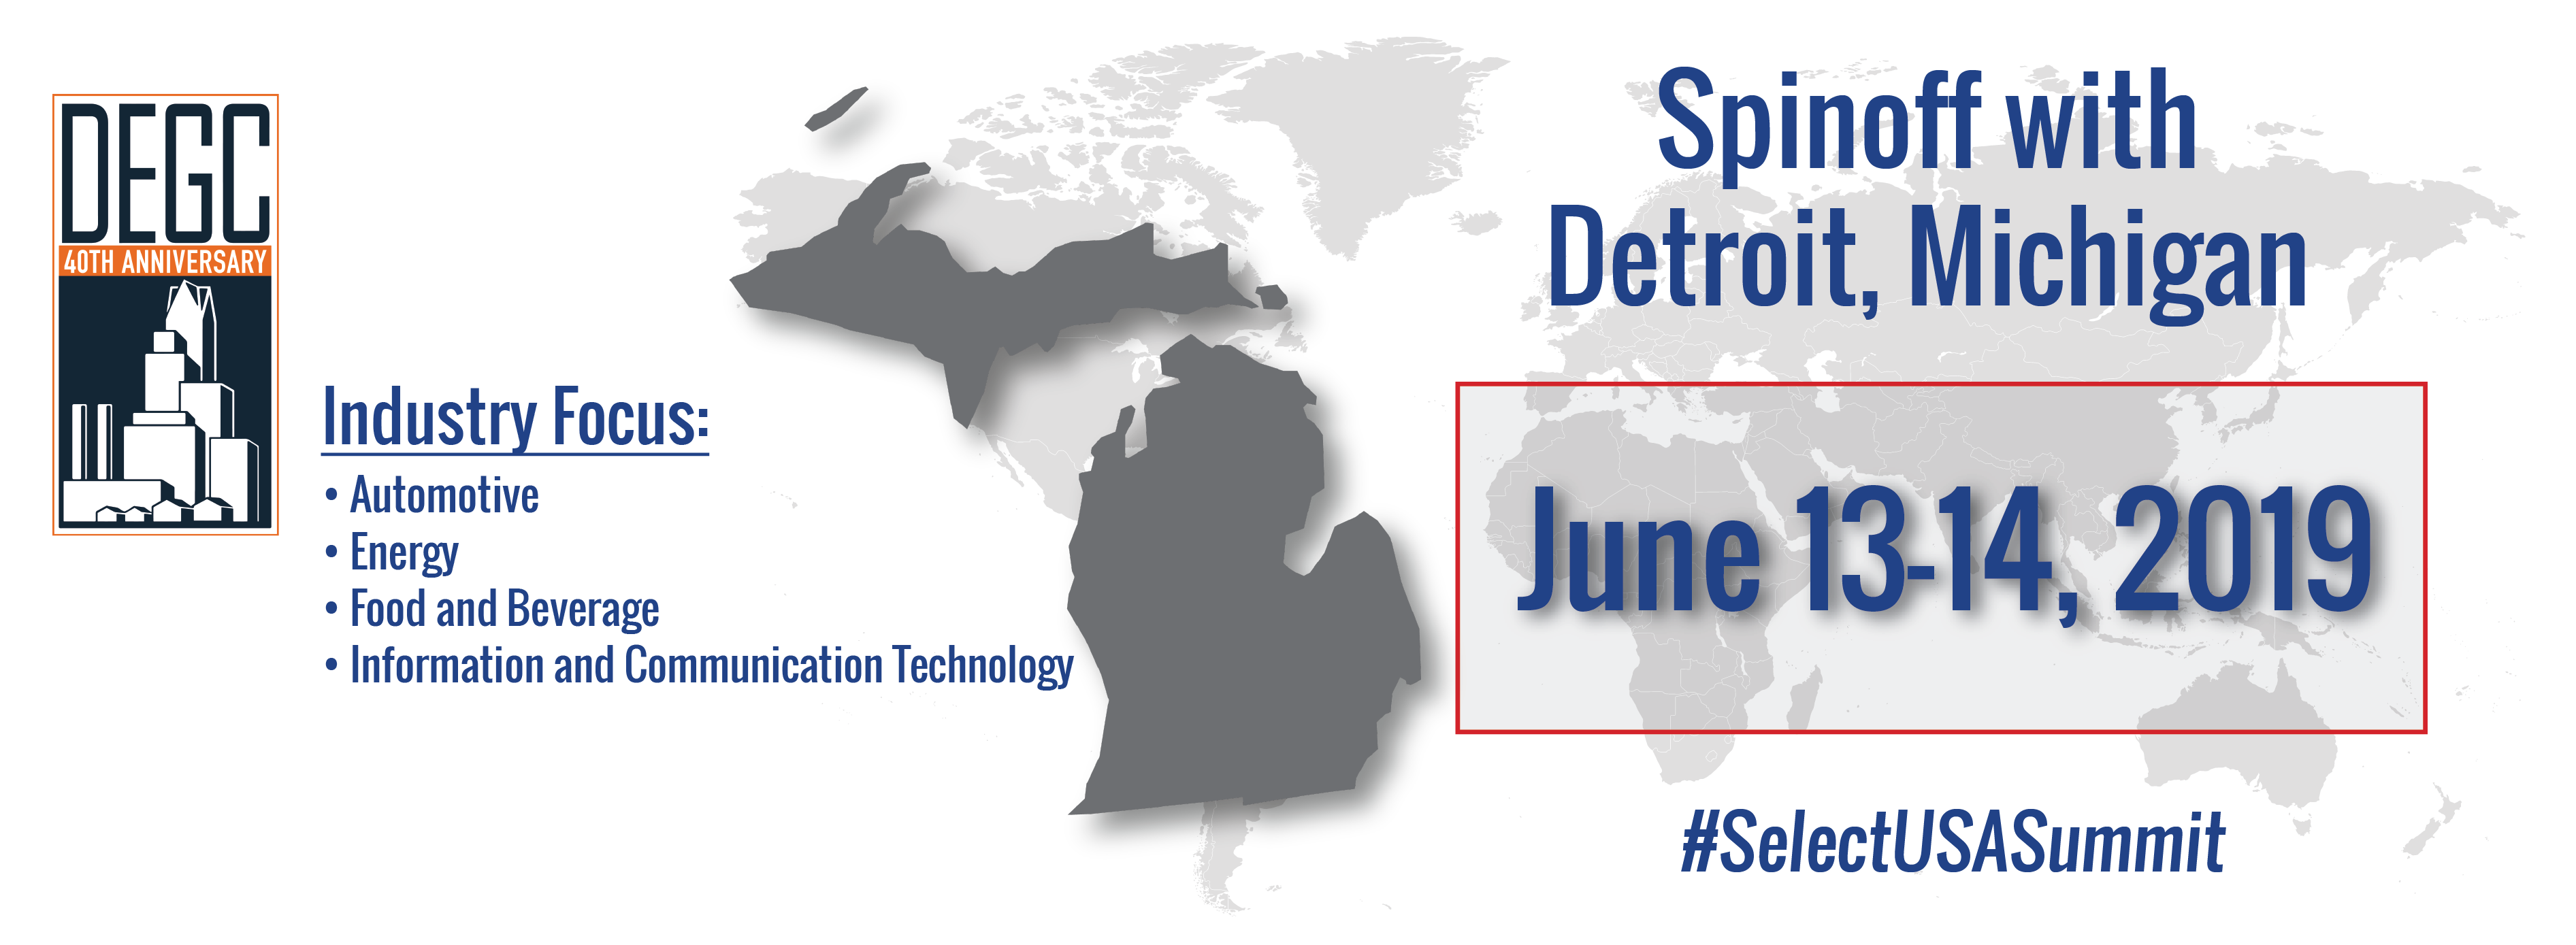 Spinoff Event Graphic - Detroit, Michigan